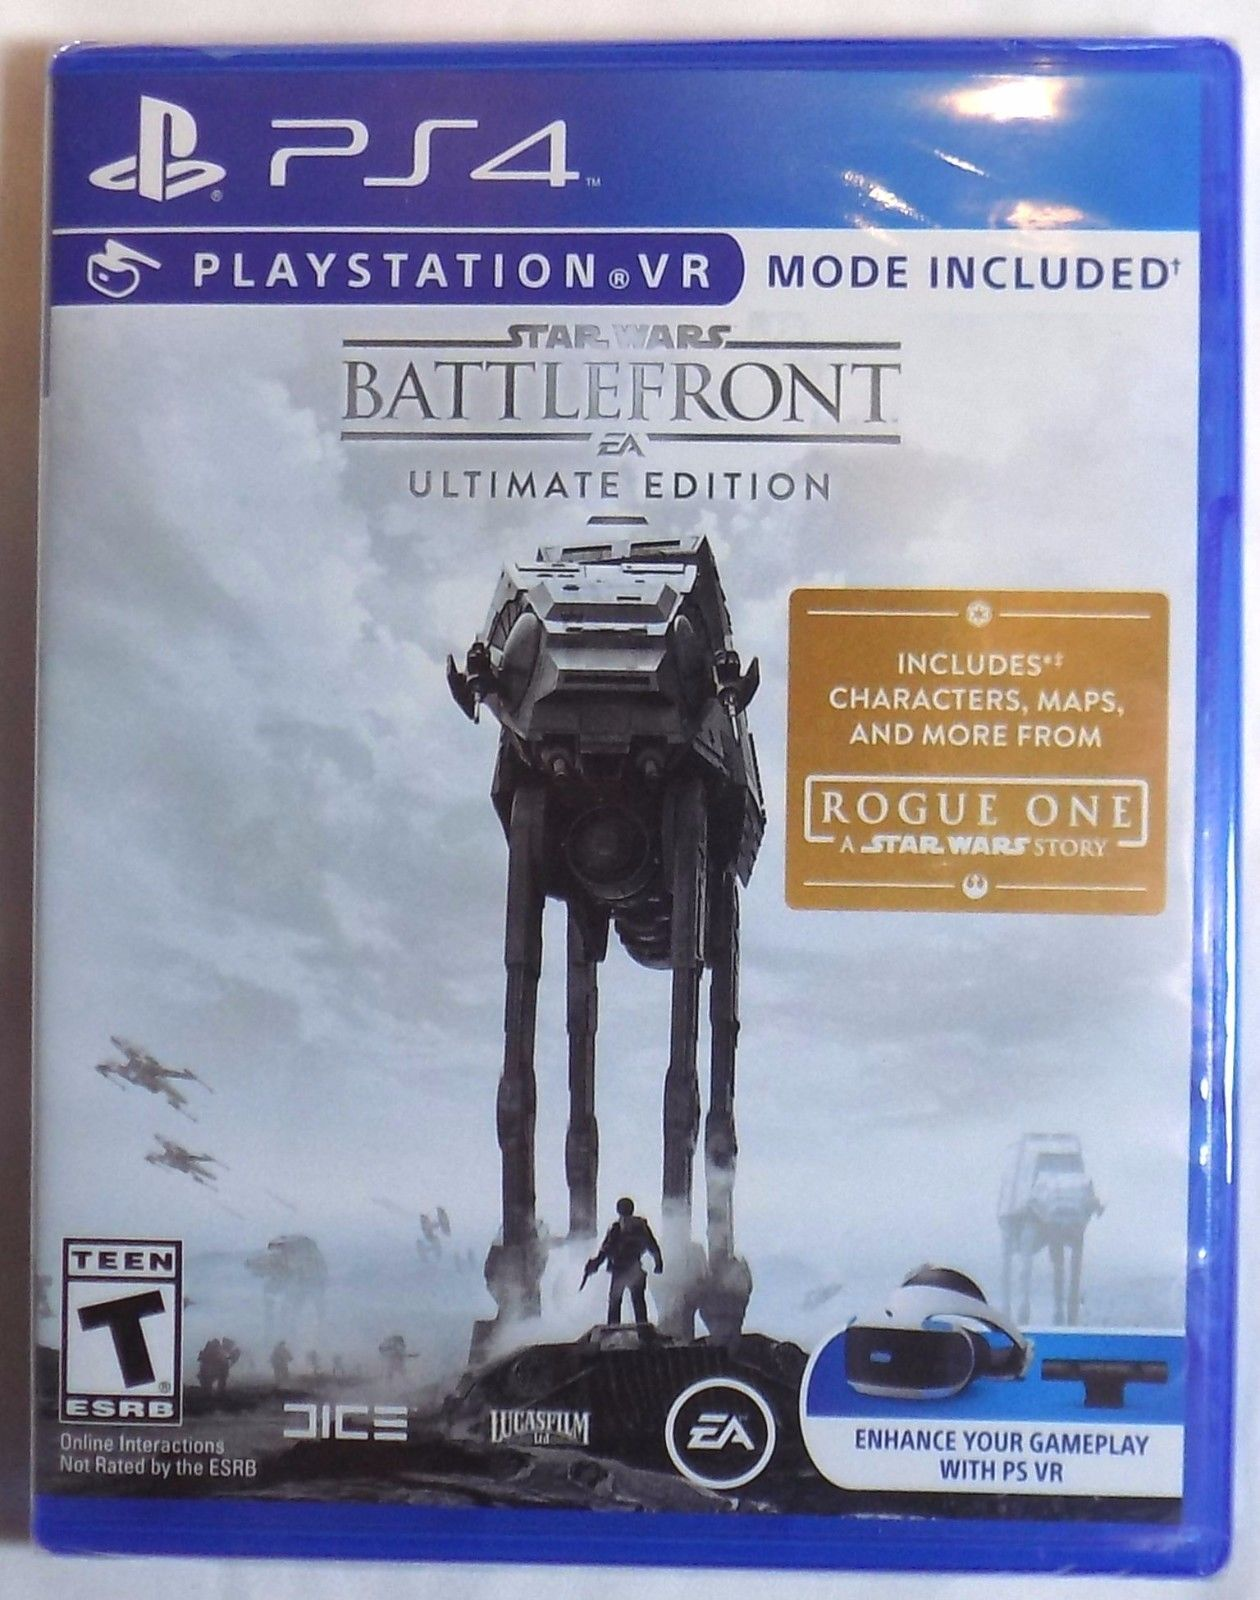 STAR WARS: BATTLEFRONT ULTIMATE EDITION Brand New PS4 Game PlayStation 4 EA Dice  http://searchpromocodes.club/star-wars-battlefront-ultimate-edition-brand-new-ps4-game-playstation-4-ea-dice/